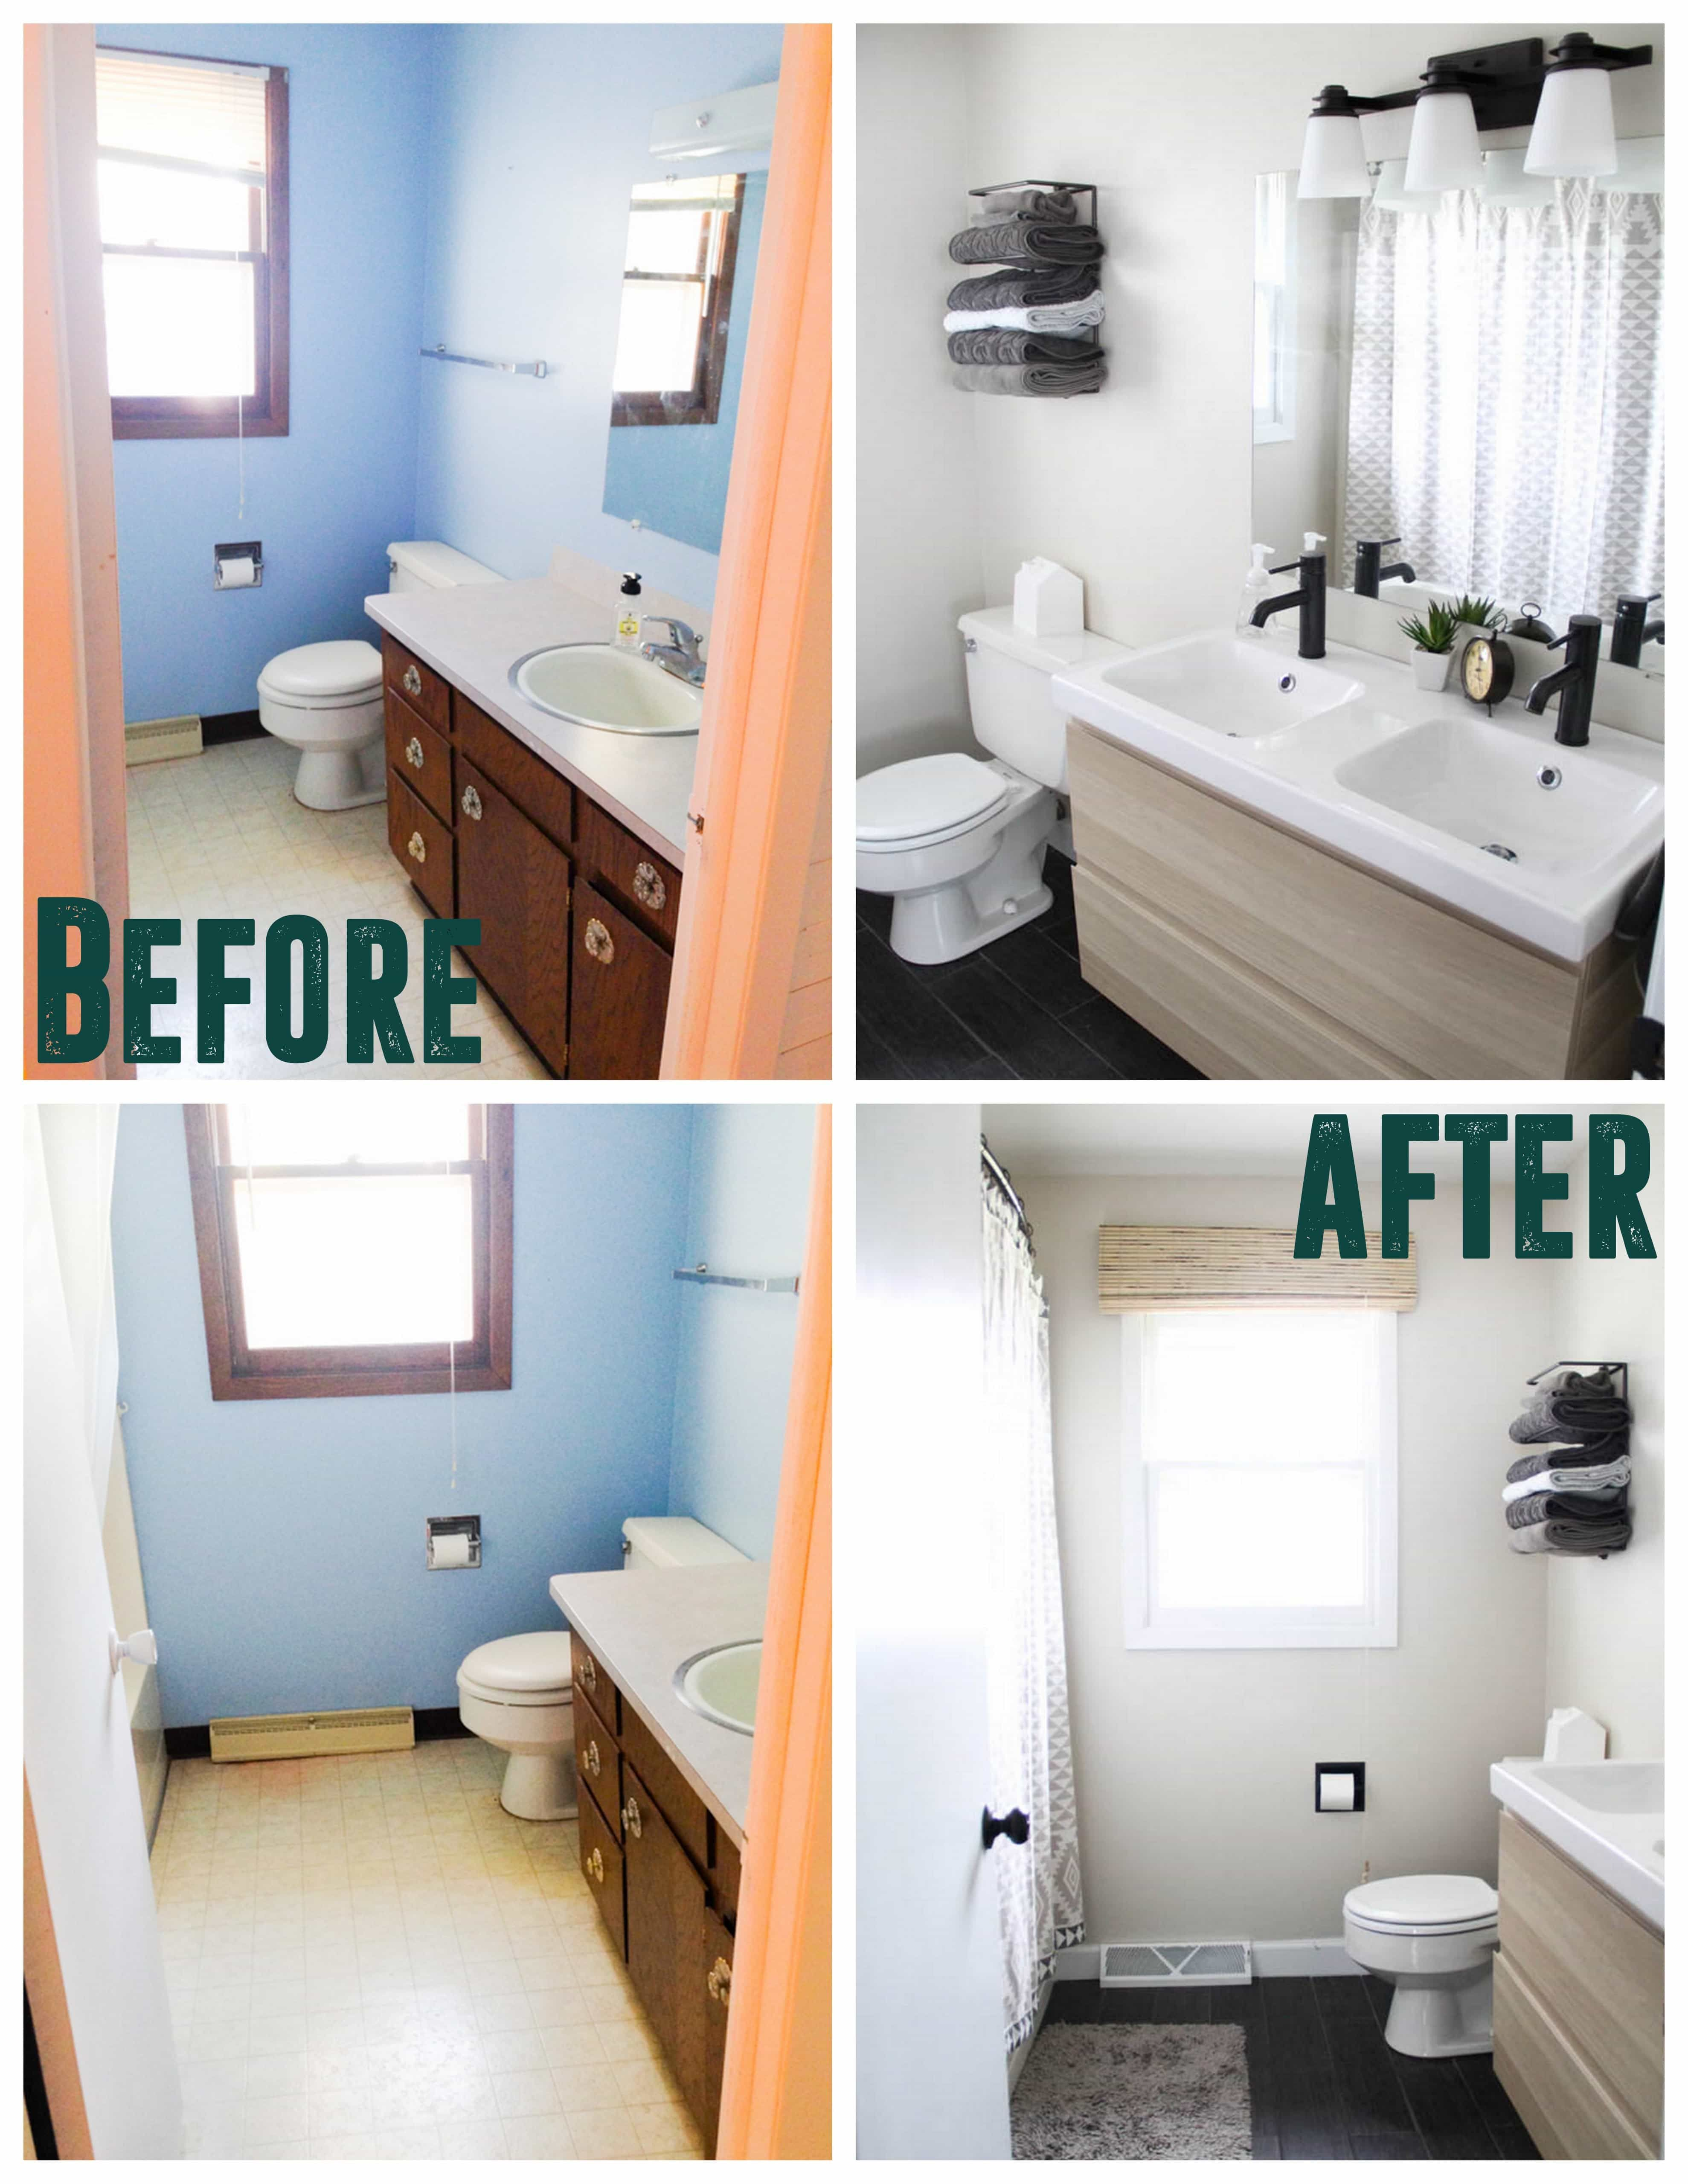 Affordable Modern Bathroom Reveal With Images Modern Bathroom Remodel Inexpensive Bathroom Remodel Budget Bathroom Remodel